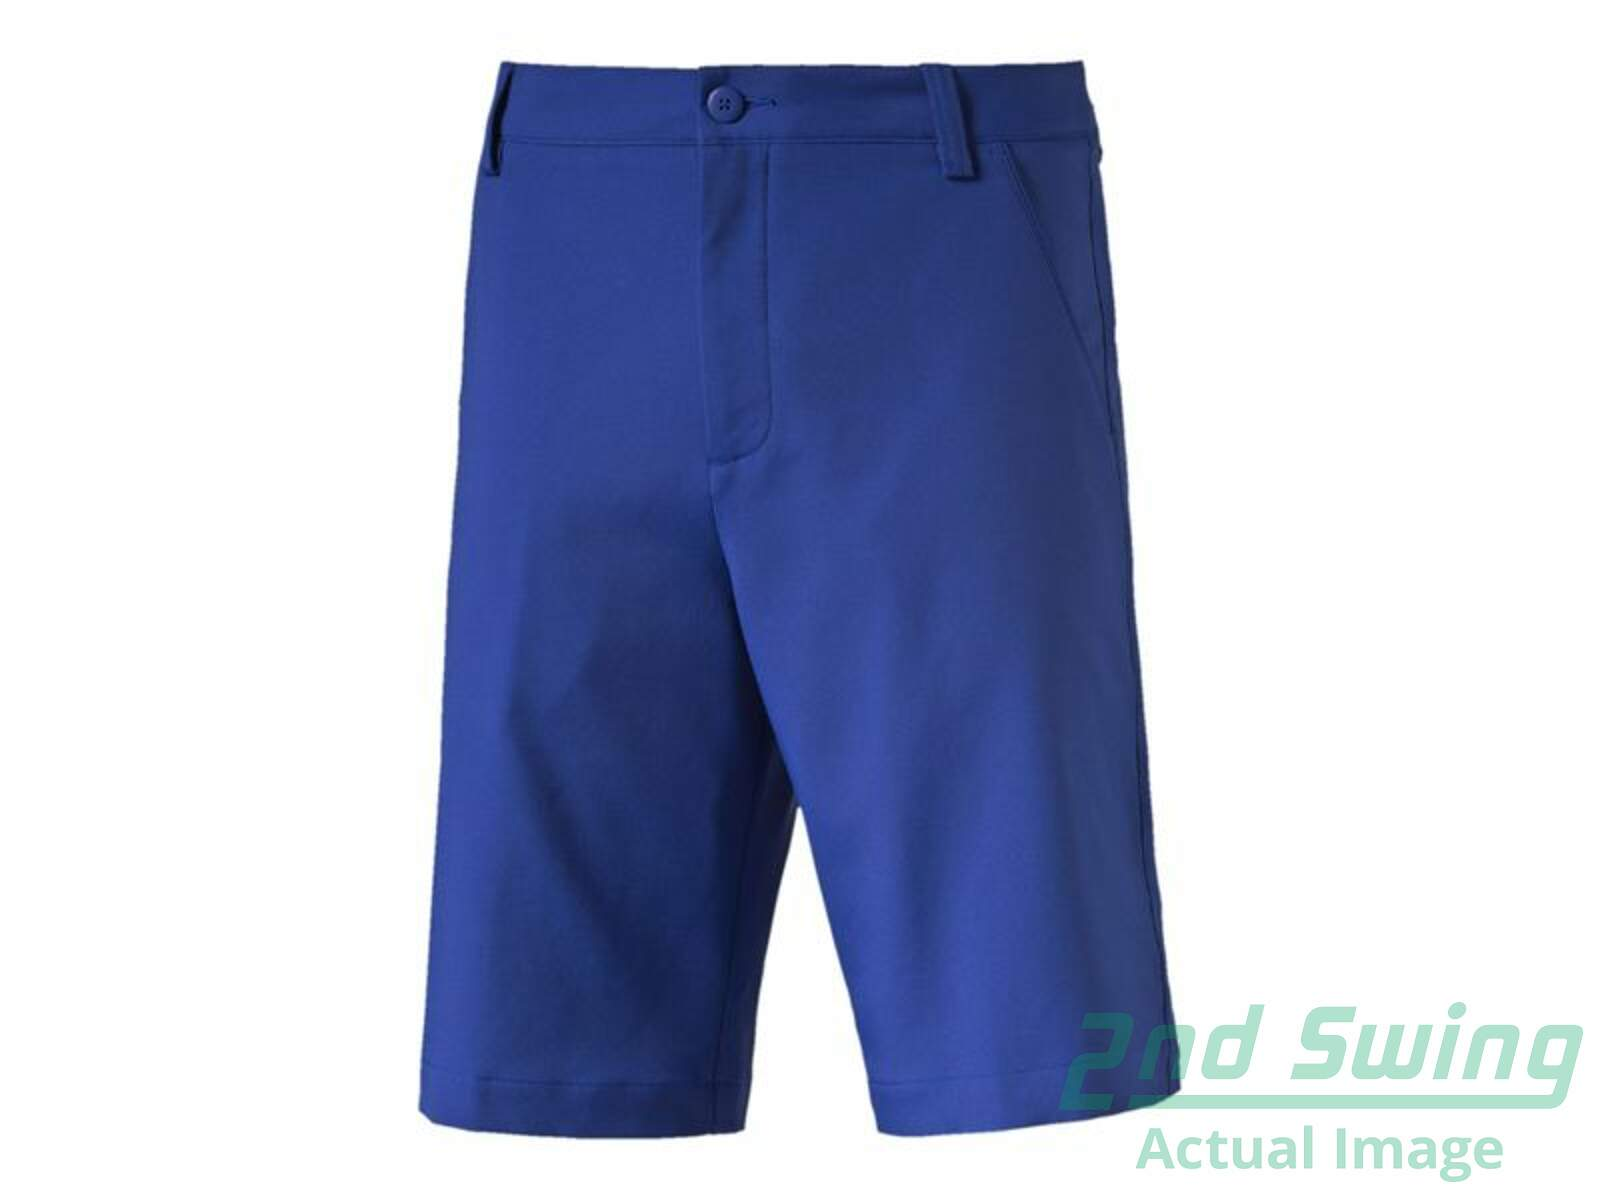 New Mens Puma Golf Tech Shorts Size 32 Surf the Web MSRP $60 568251